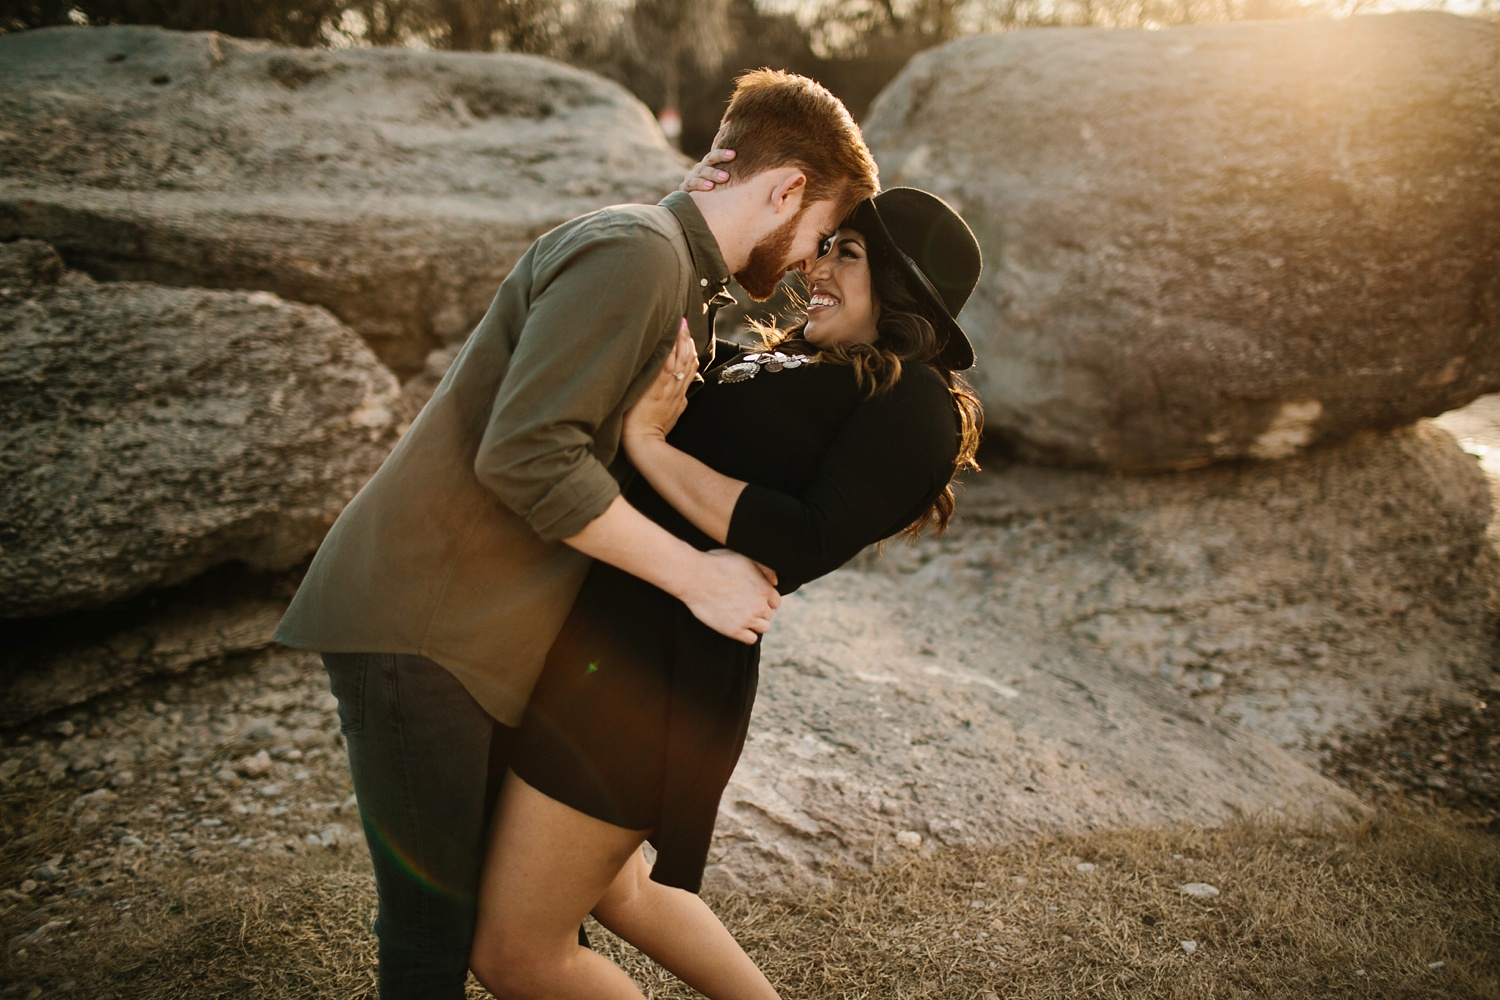 Grant + Lysette - floral dress engagement session by North Texas Wedding Photographer Rachel Meagan Photography044